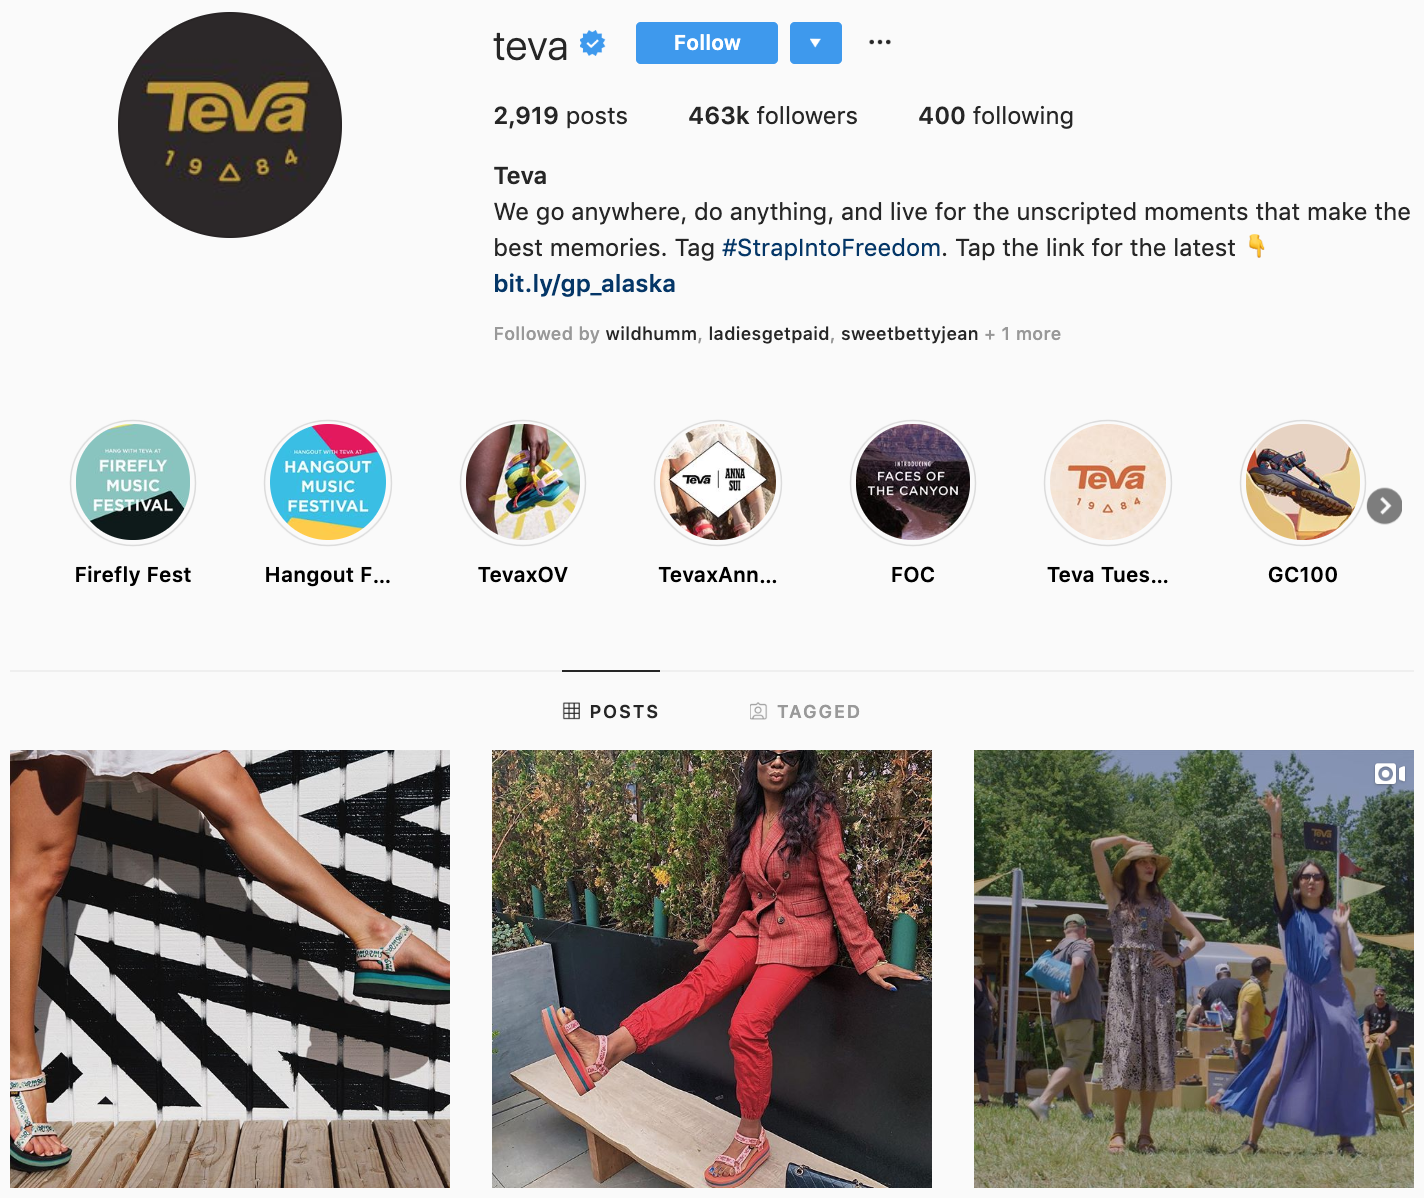 Teva on Instagram - best brands to follow